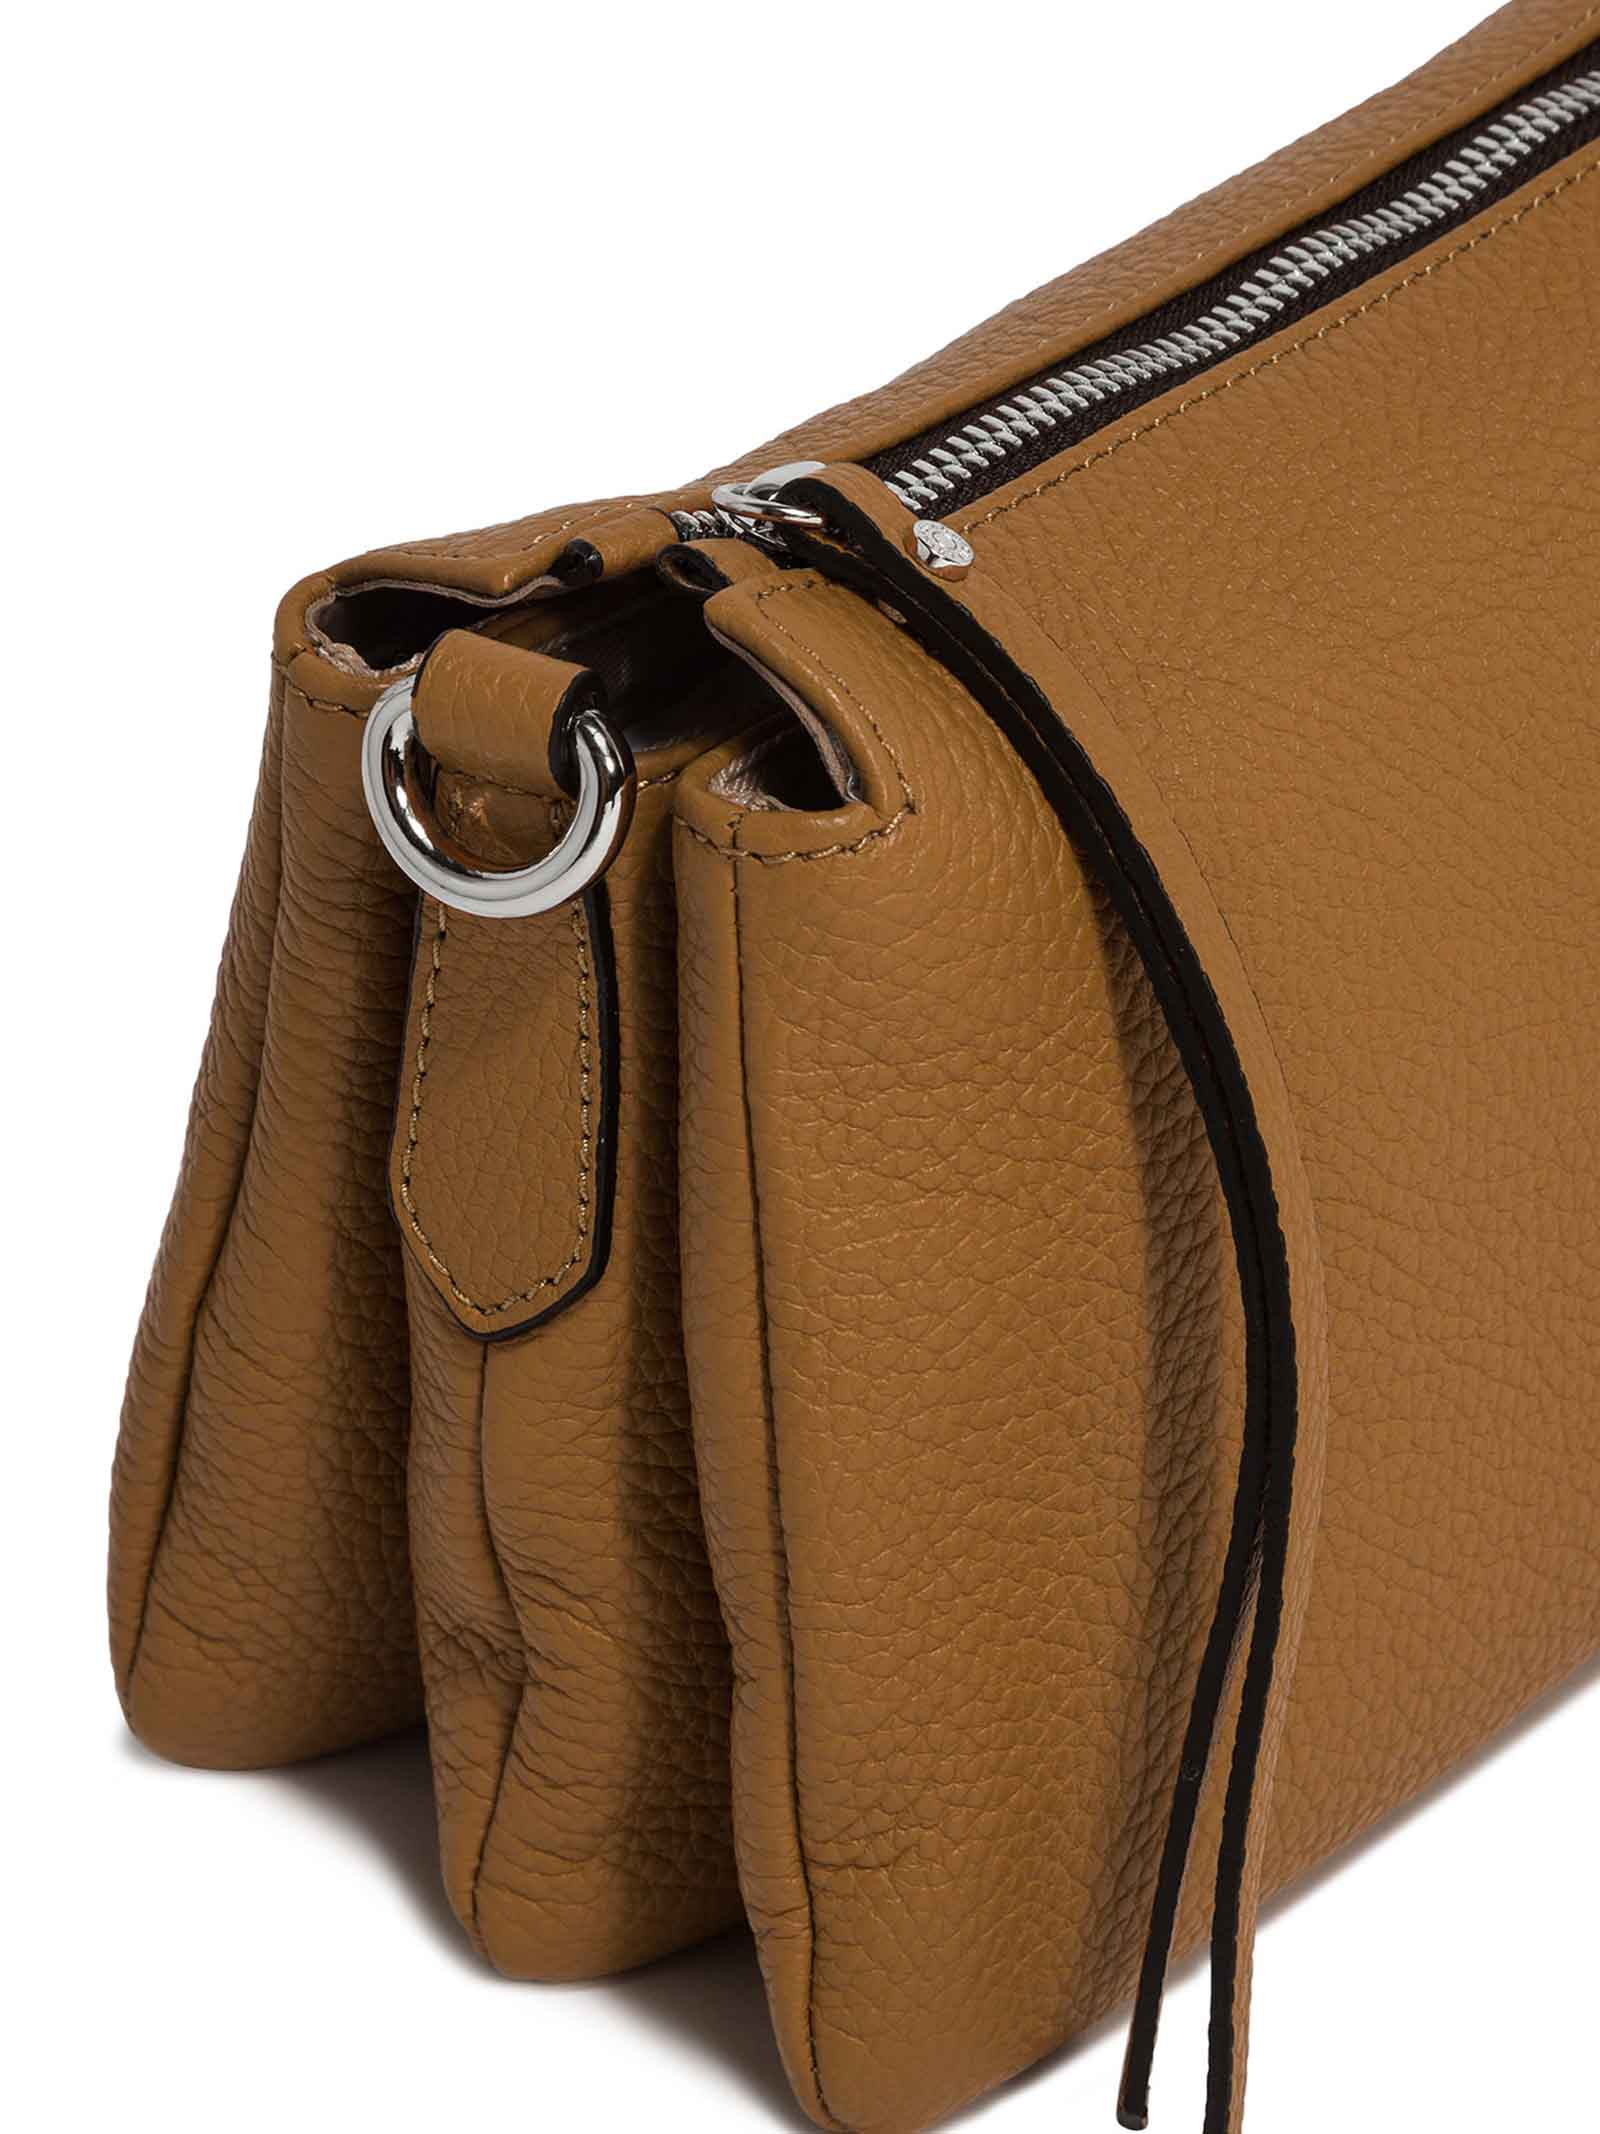 Women's Bag Cross-body Clutch Three In Camel Hammered Leather With Adjustable And Detachable Cross-body Strap Gianni Chiarini | Bags and backpacks | BS4362009